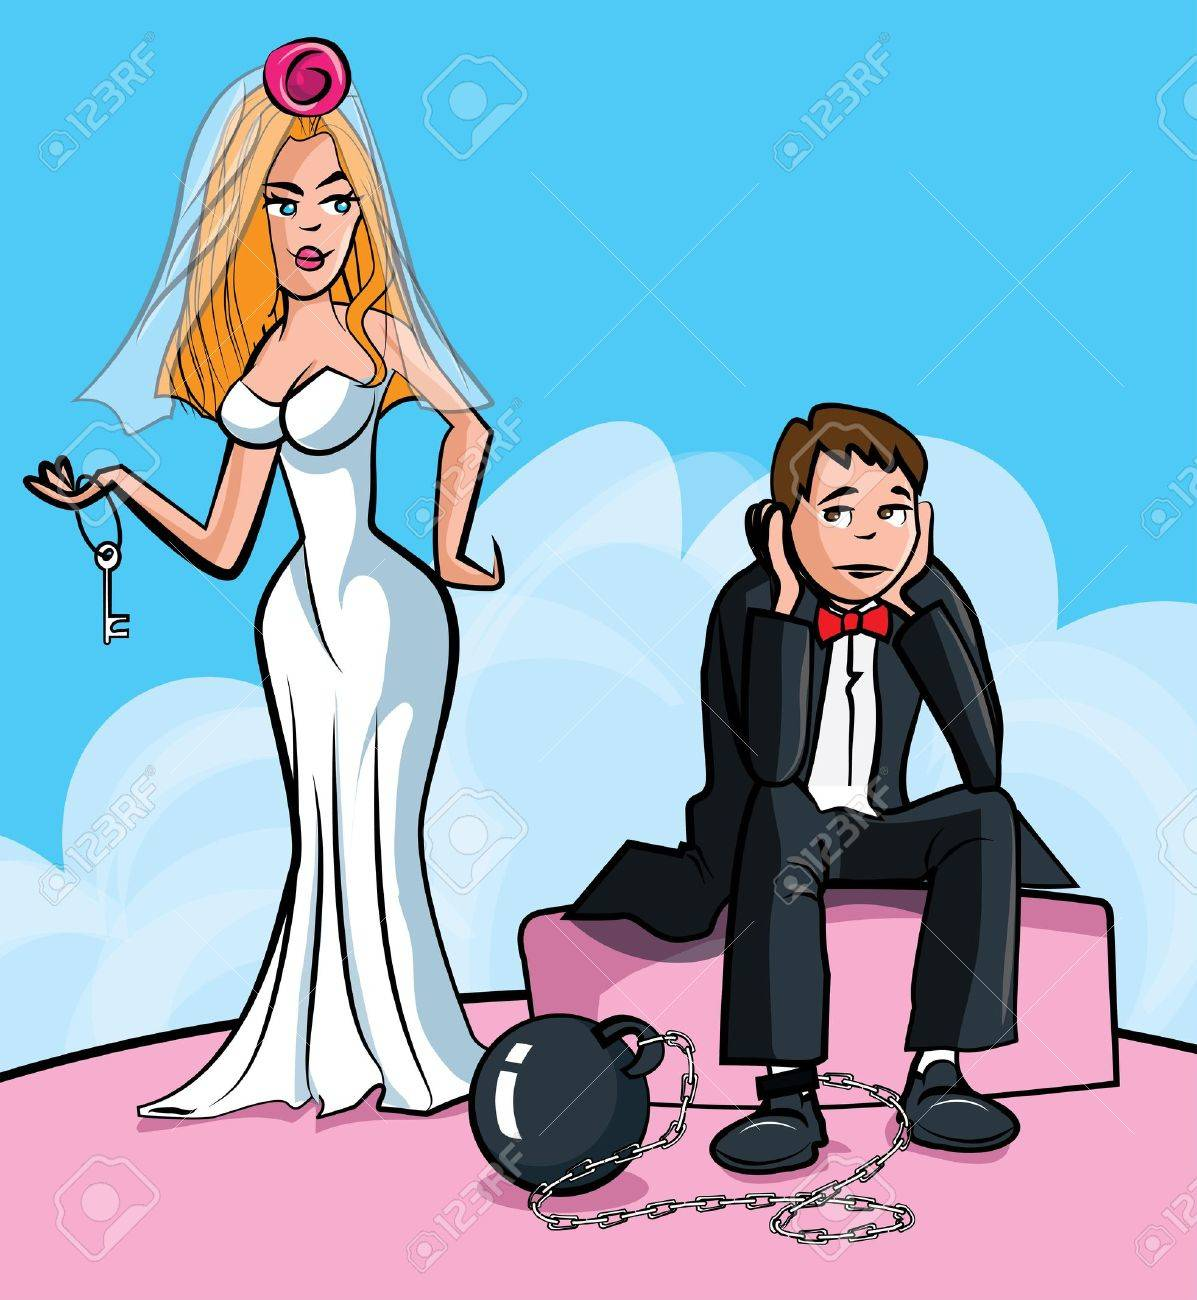 Cartoon Ball and chain. Just married man with ball and chain. Isolated - 11271470